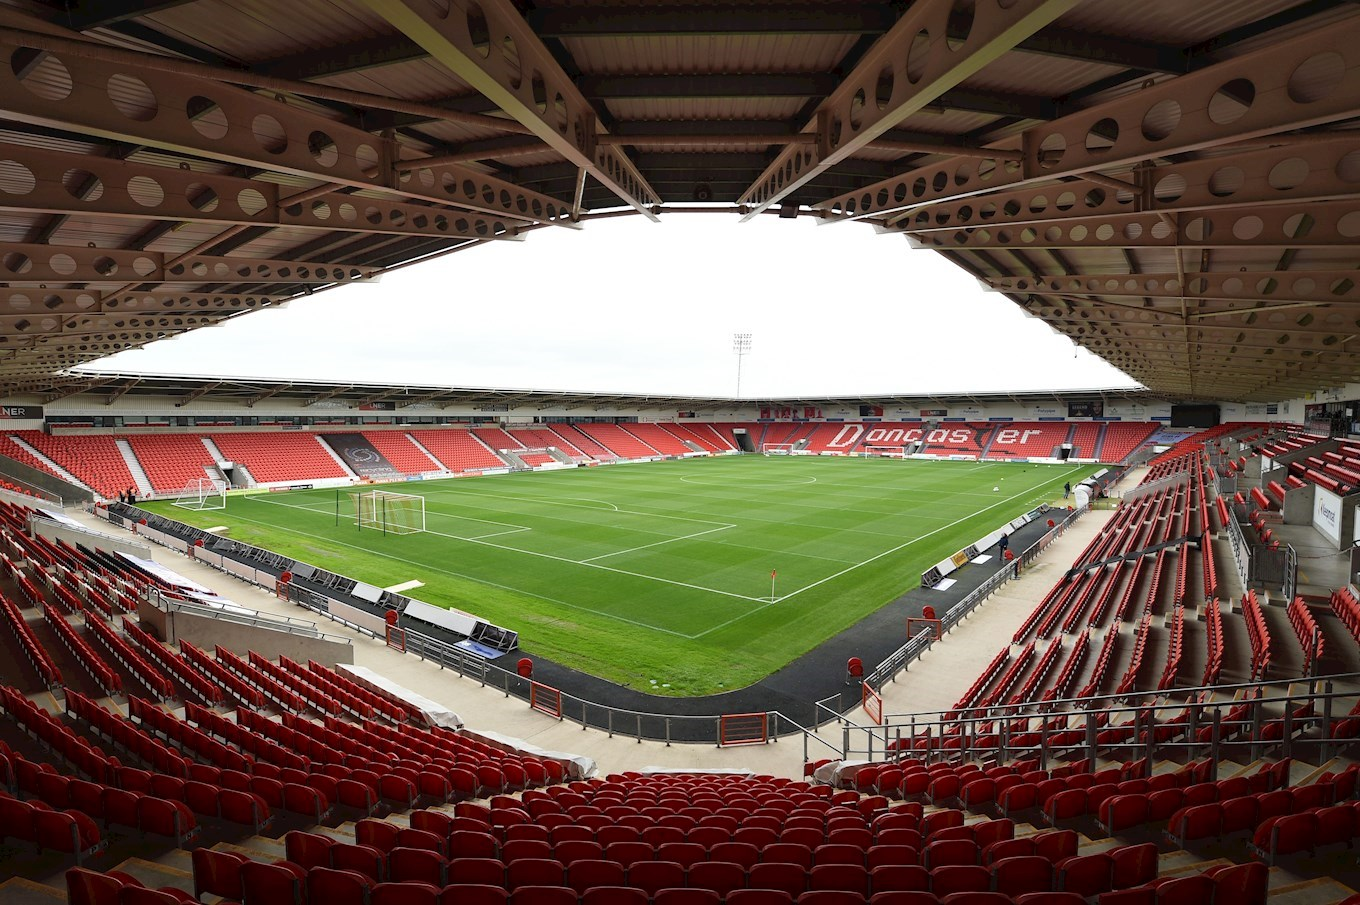 e95a0eb2 TICKETS: Pay on the gate at Doncaster on Saturday - News - Coventry City